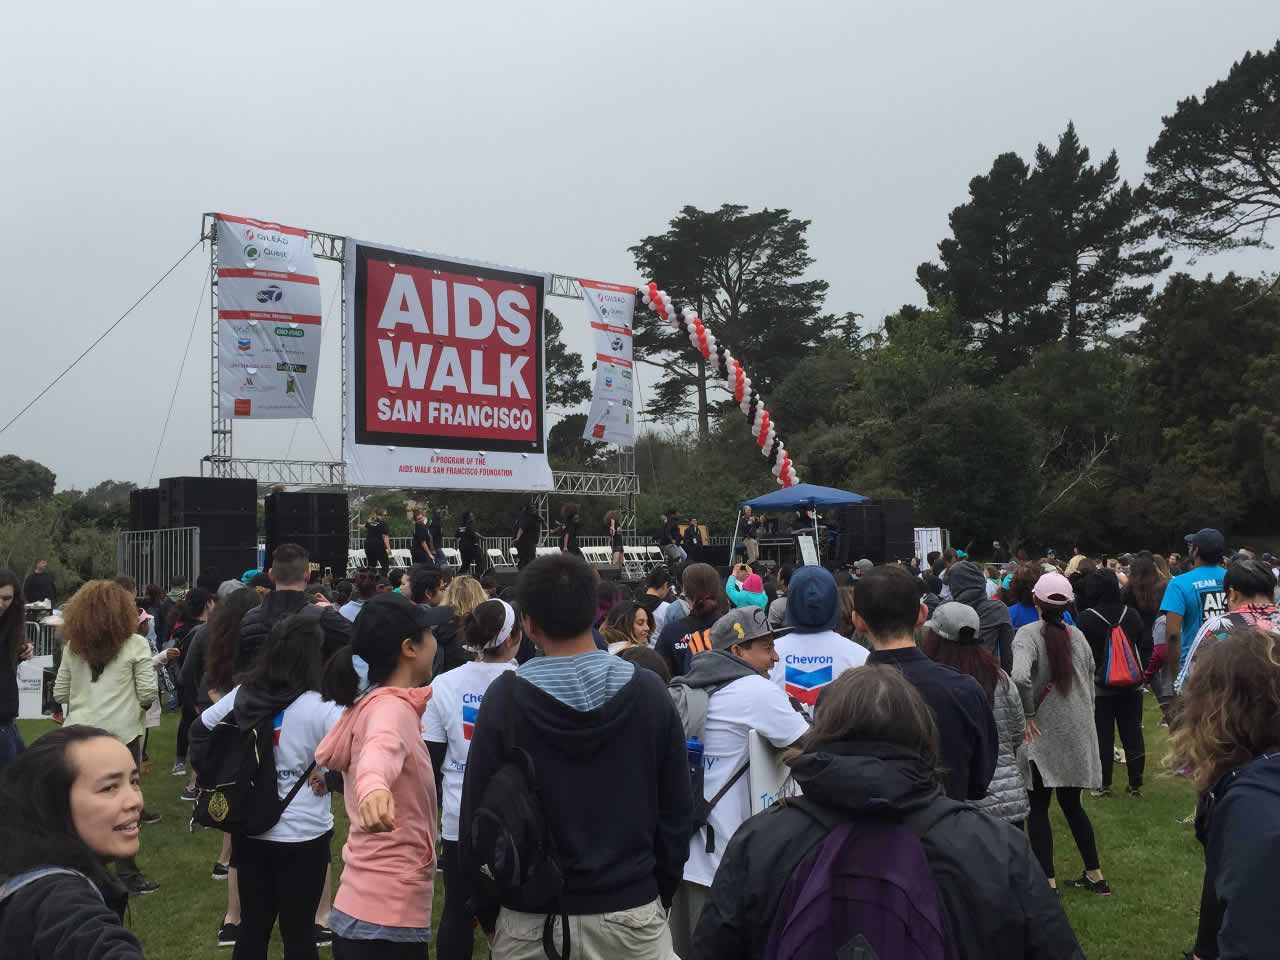 "<div class=""meta image-caption""><div class=""origin-logo origin-image none""><span>none</span></div><span class=""caption-text"">AIDS Walk San Francisco on Sunday, July 17, 2016. (KGO-TV)</span></div>"